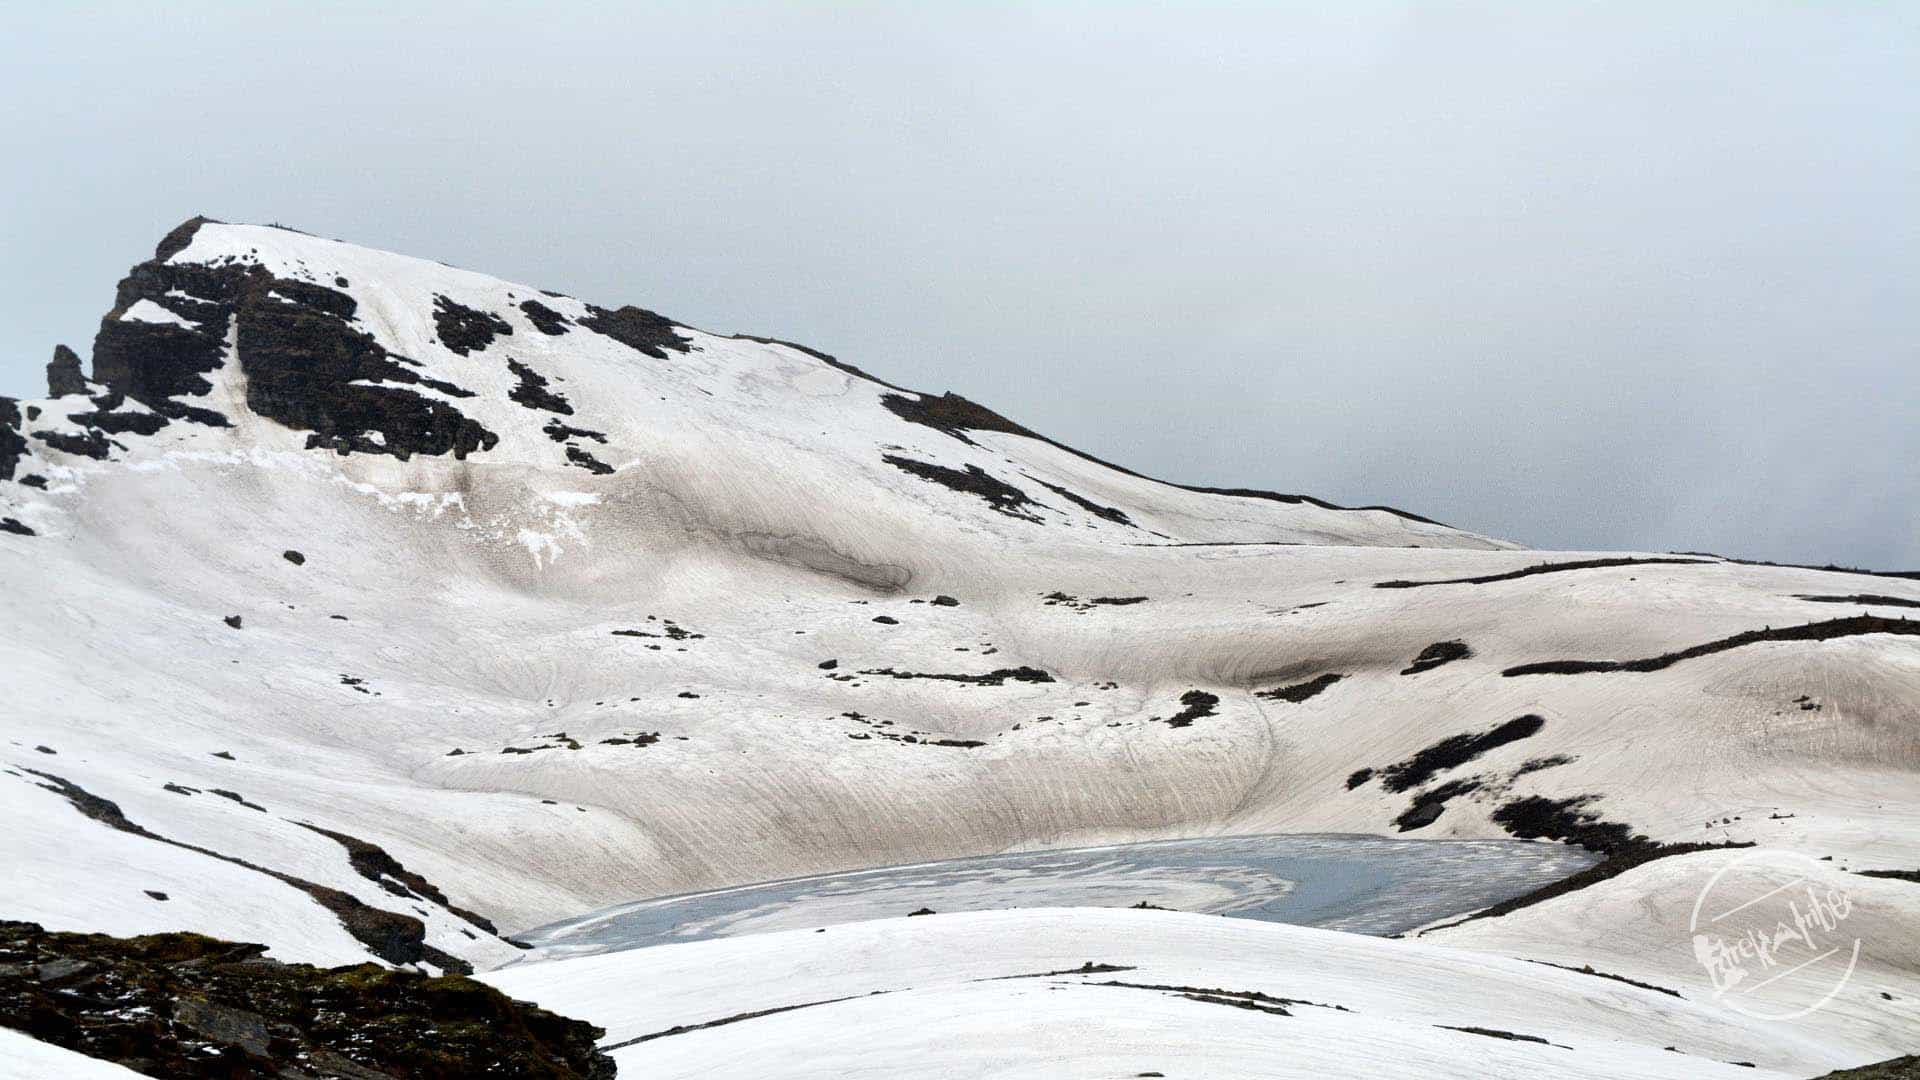 Bhrigu Lake Trekking - Trek to frozen disk lake